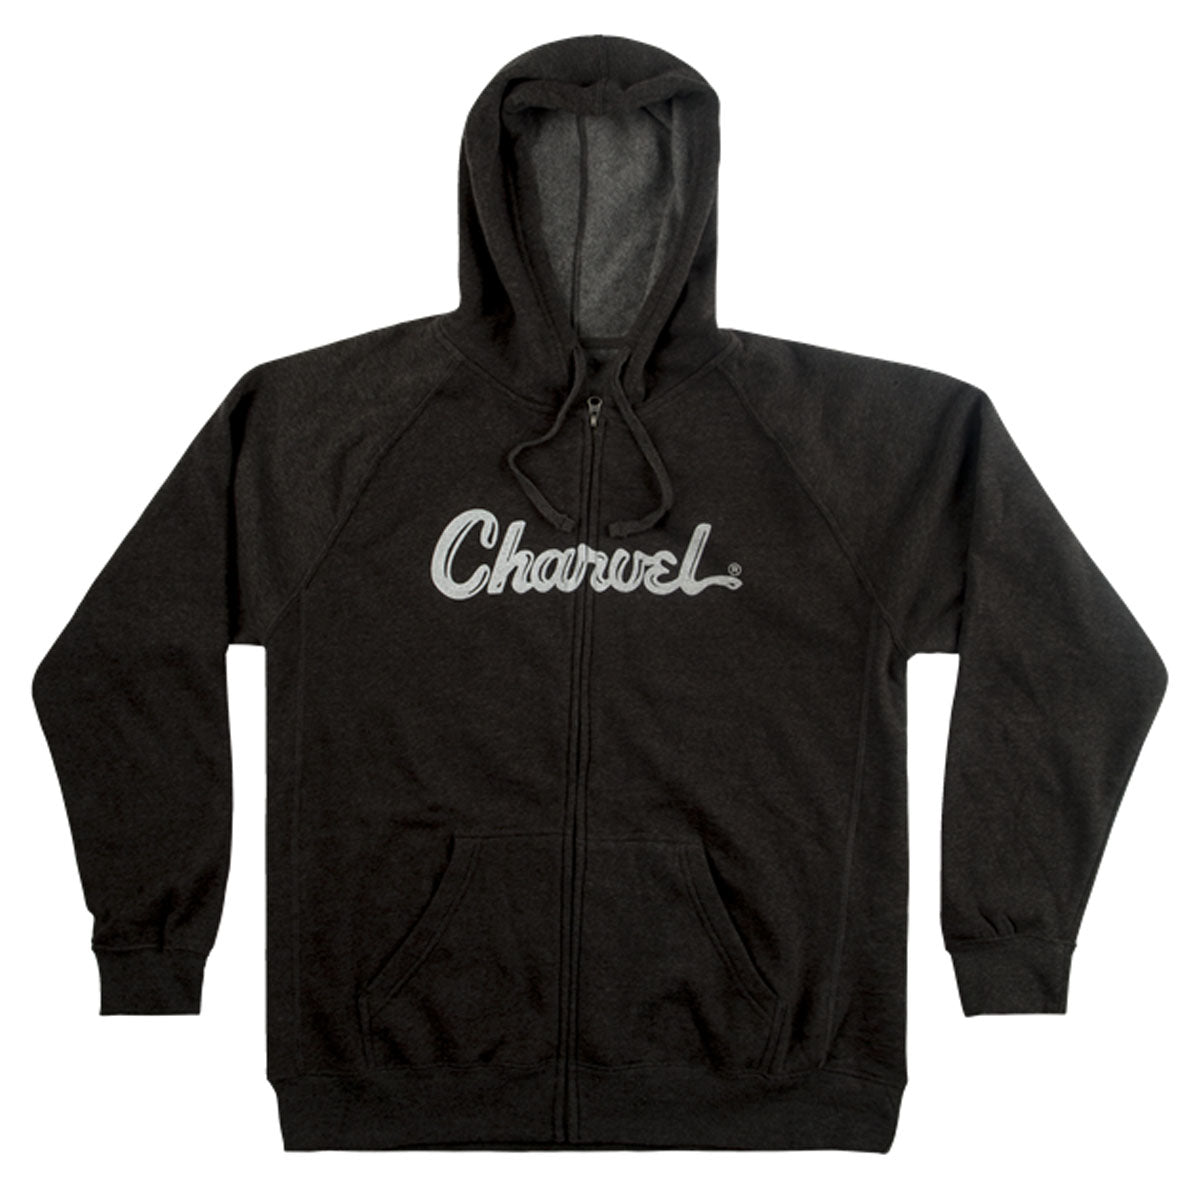 Charvel Logo Hoodie, Charcoal, S Small - 0992463406